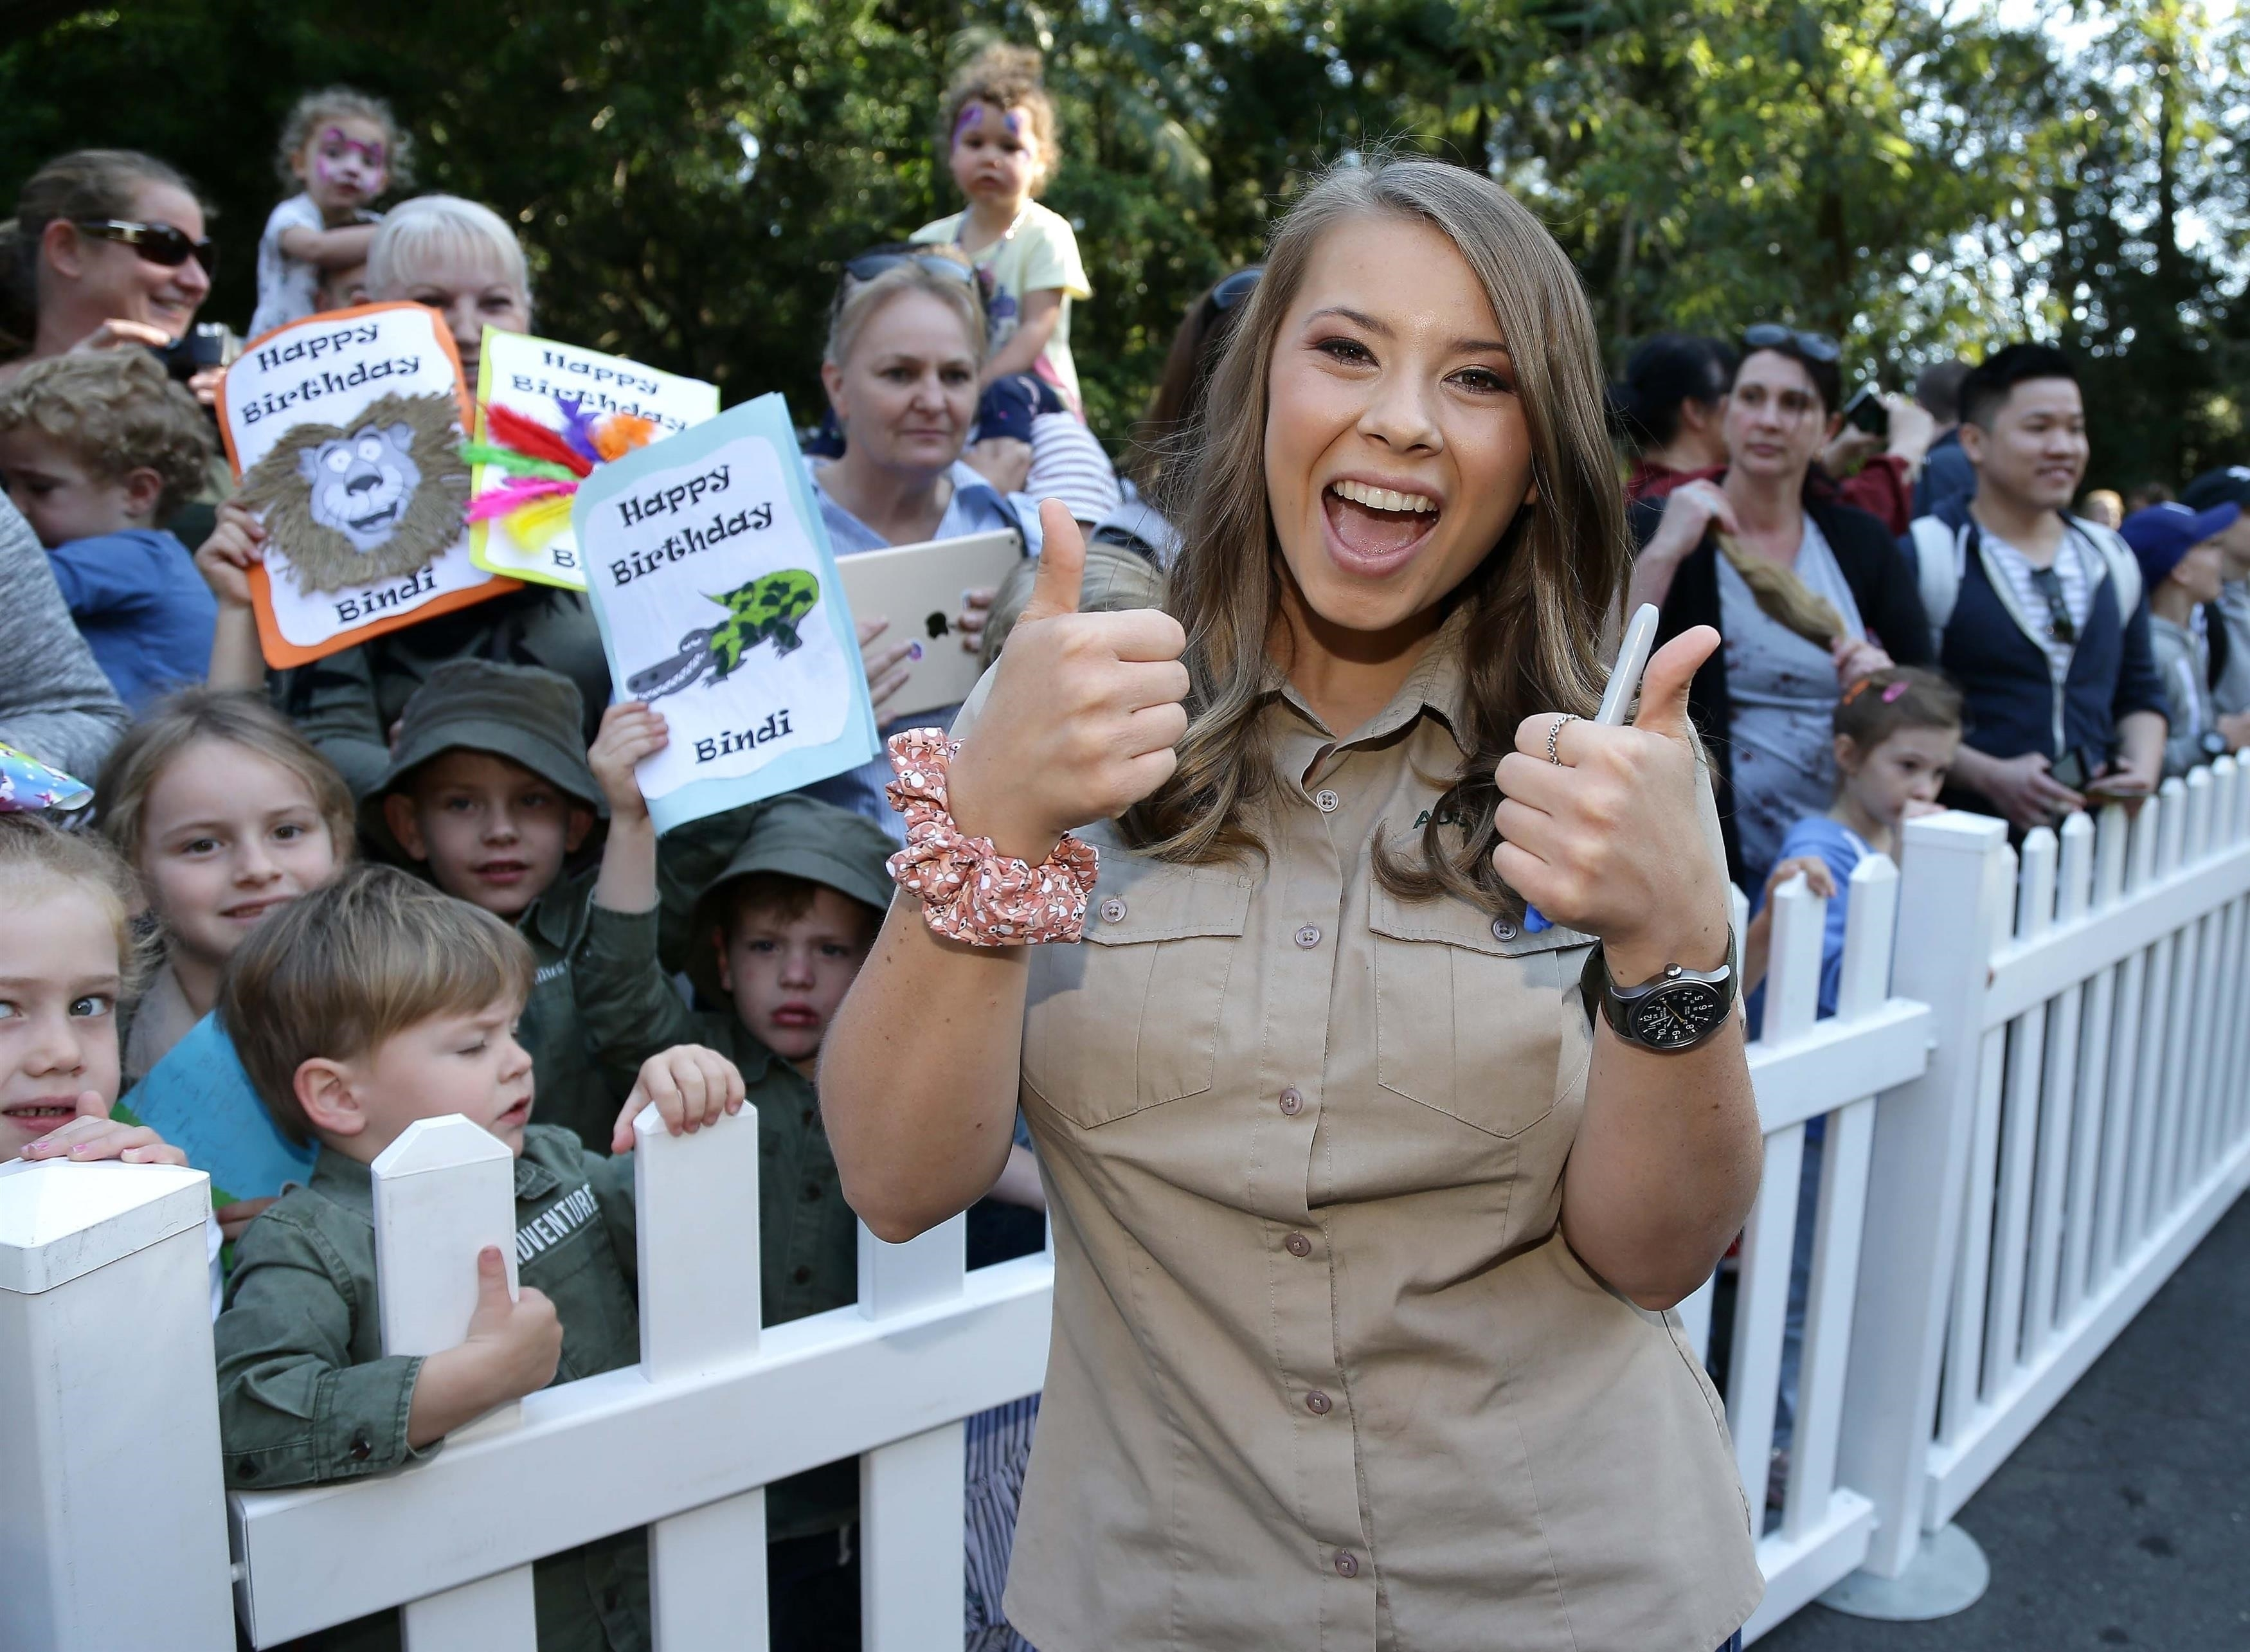 Bindi Irwin celebrated her 20th birthday at Australia Zoo with her family in Queensland, Australia on July 24, 2018.